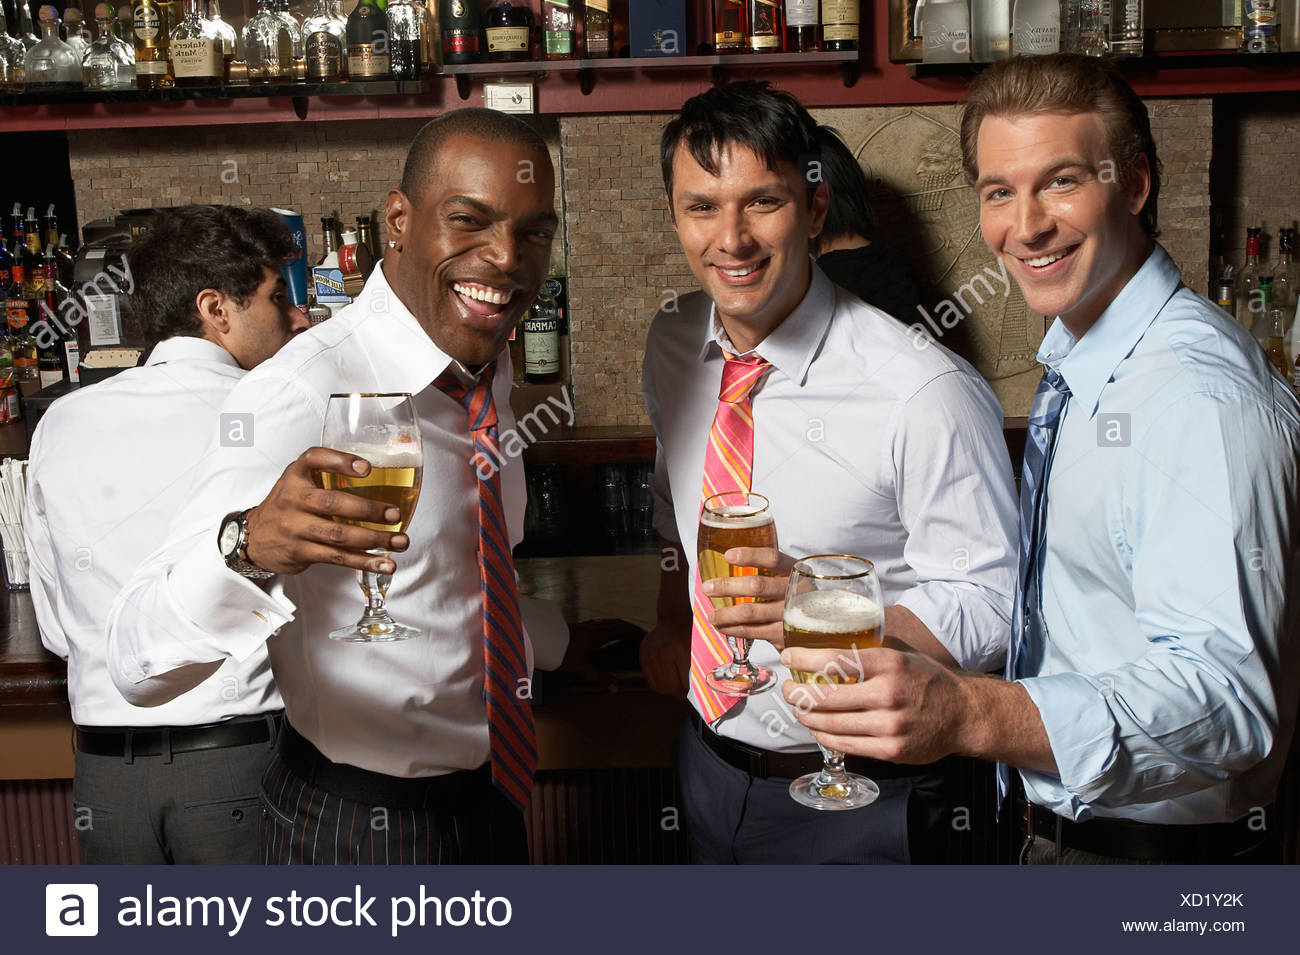 Three businessmen at bar with drinks - Stock Image